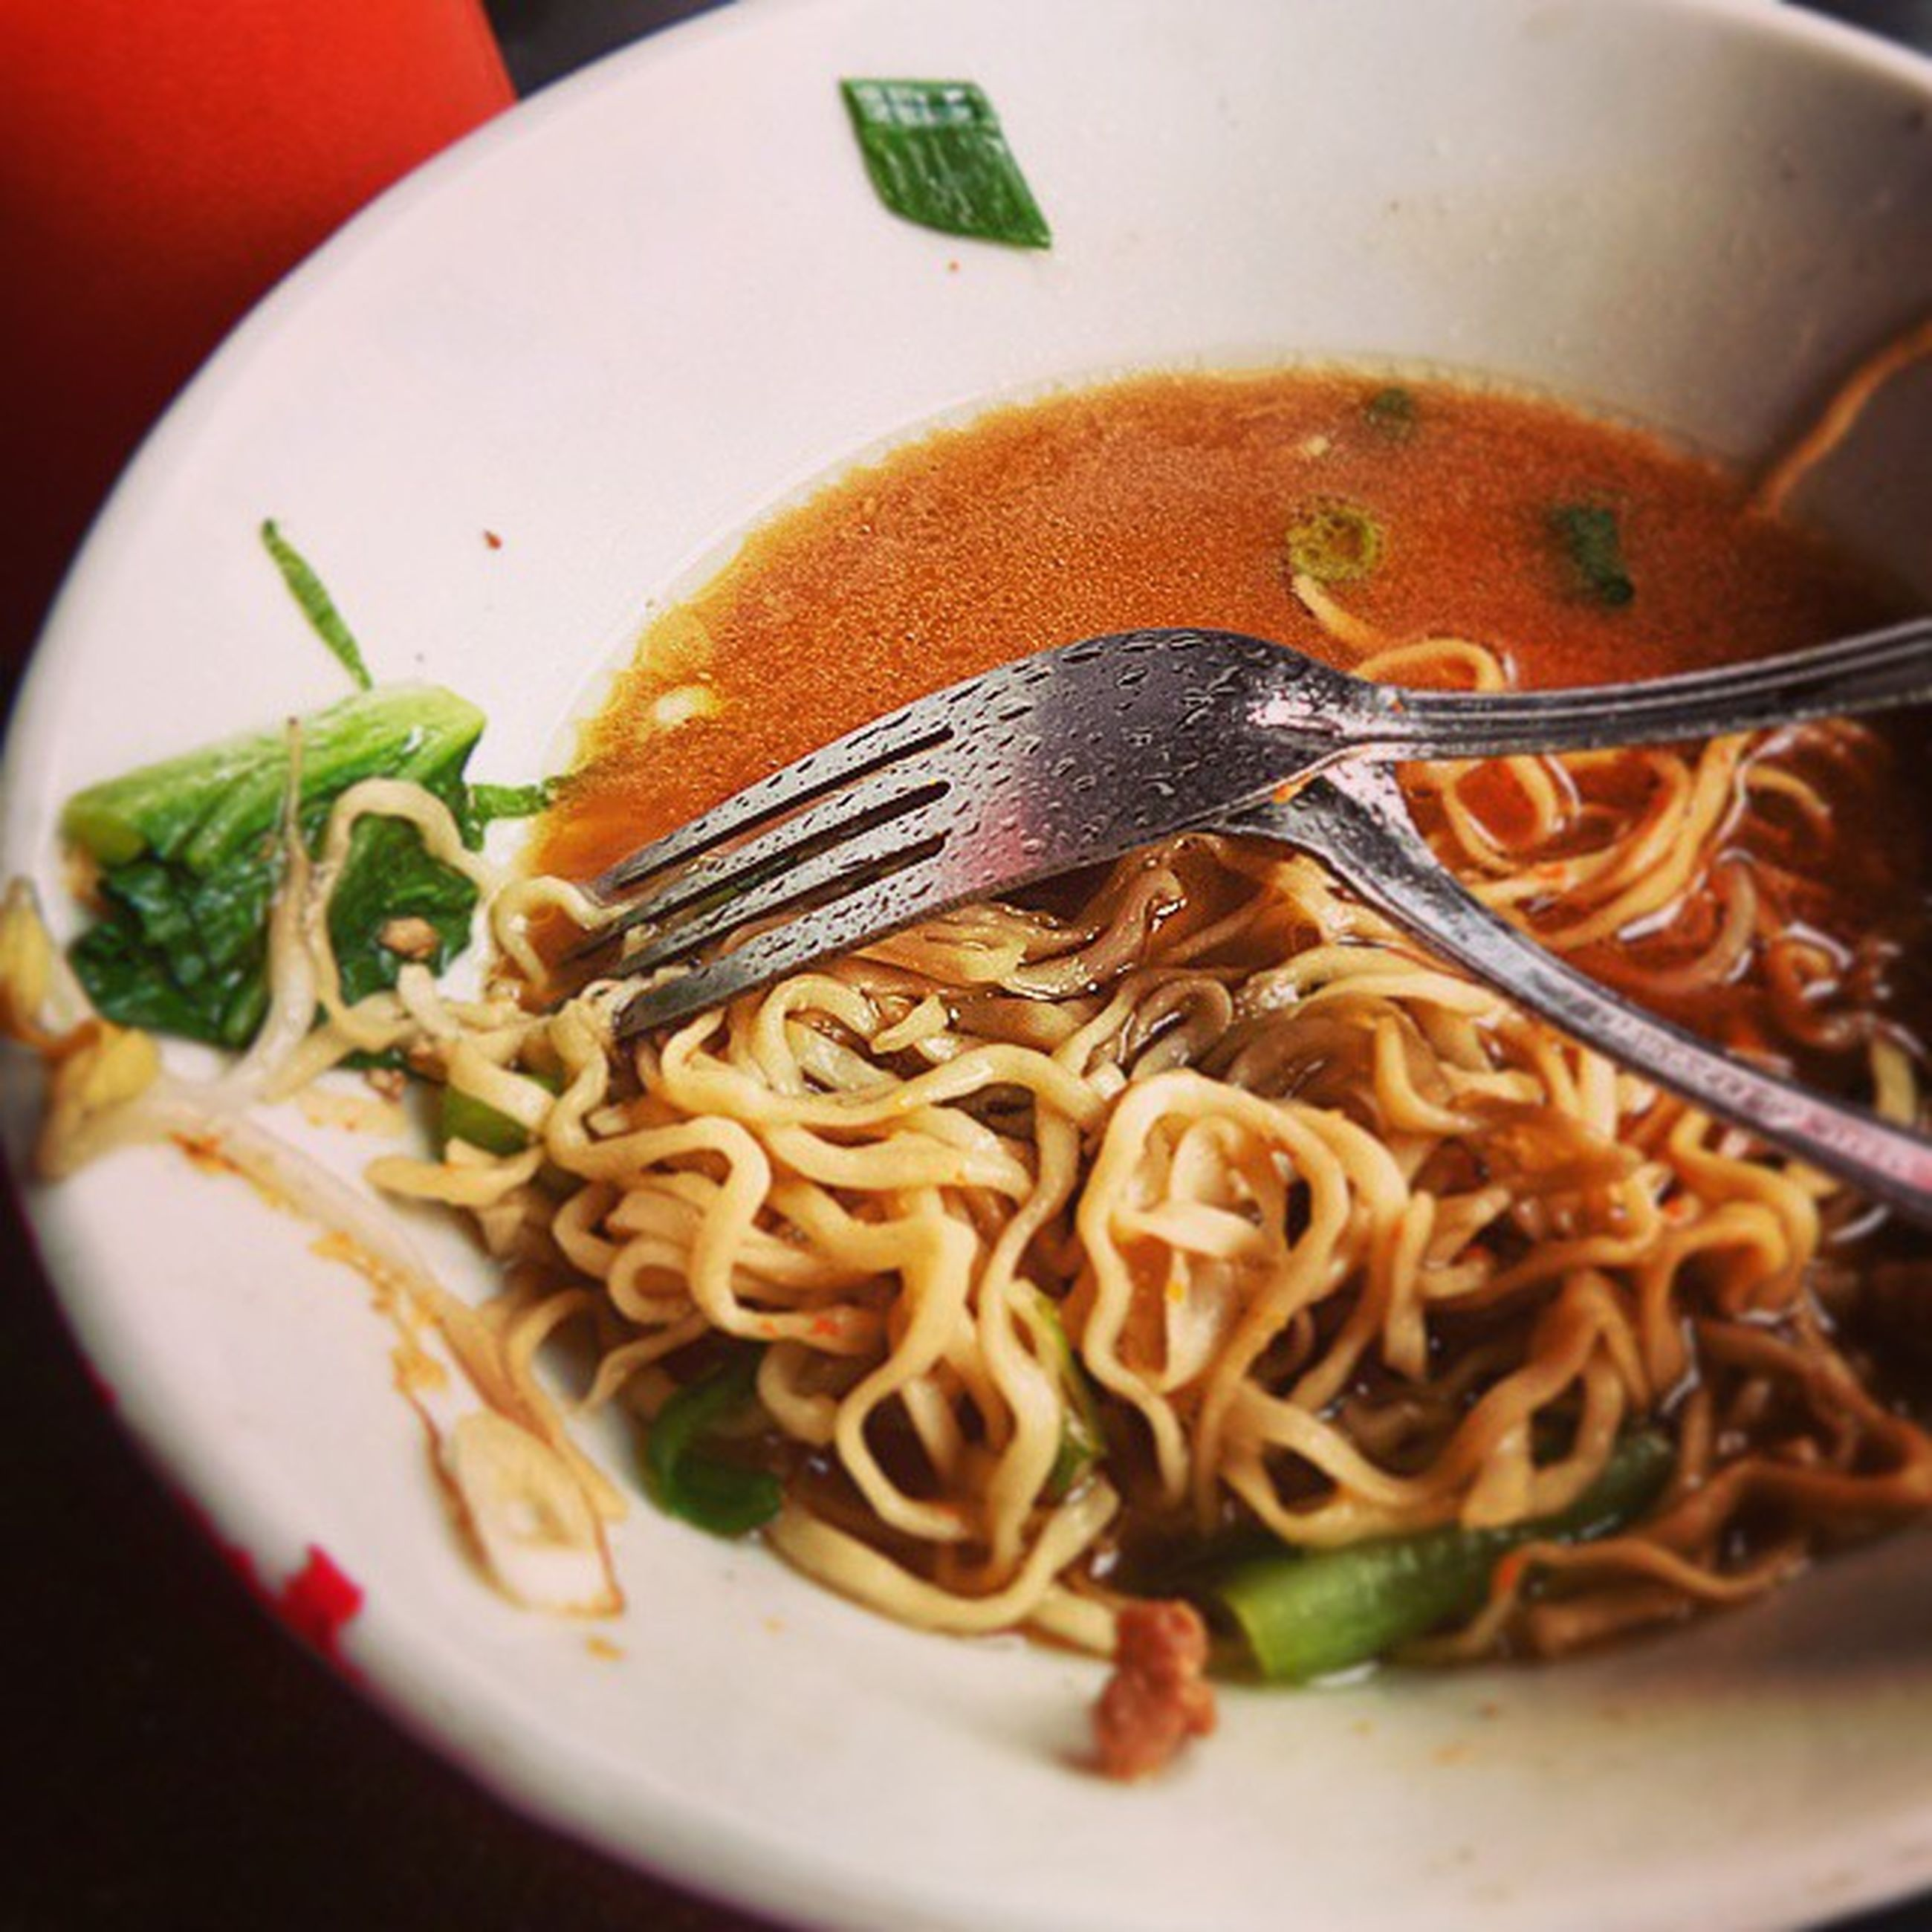 food and drink, food, indoors, freshness, healthy eating, ready-to-eat, plate, bowl, meal, close-up, noodles, serving size, still life, soup, spoon, vegetable, cooked, indulgence, seafood, table